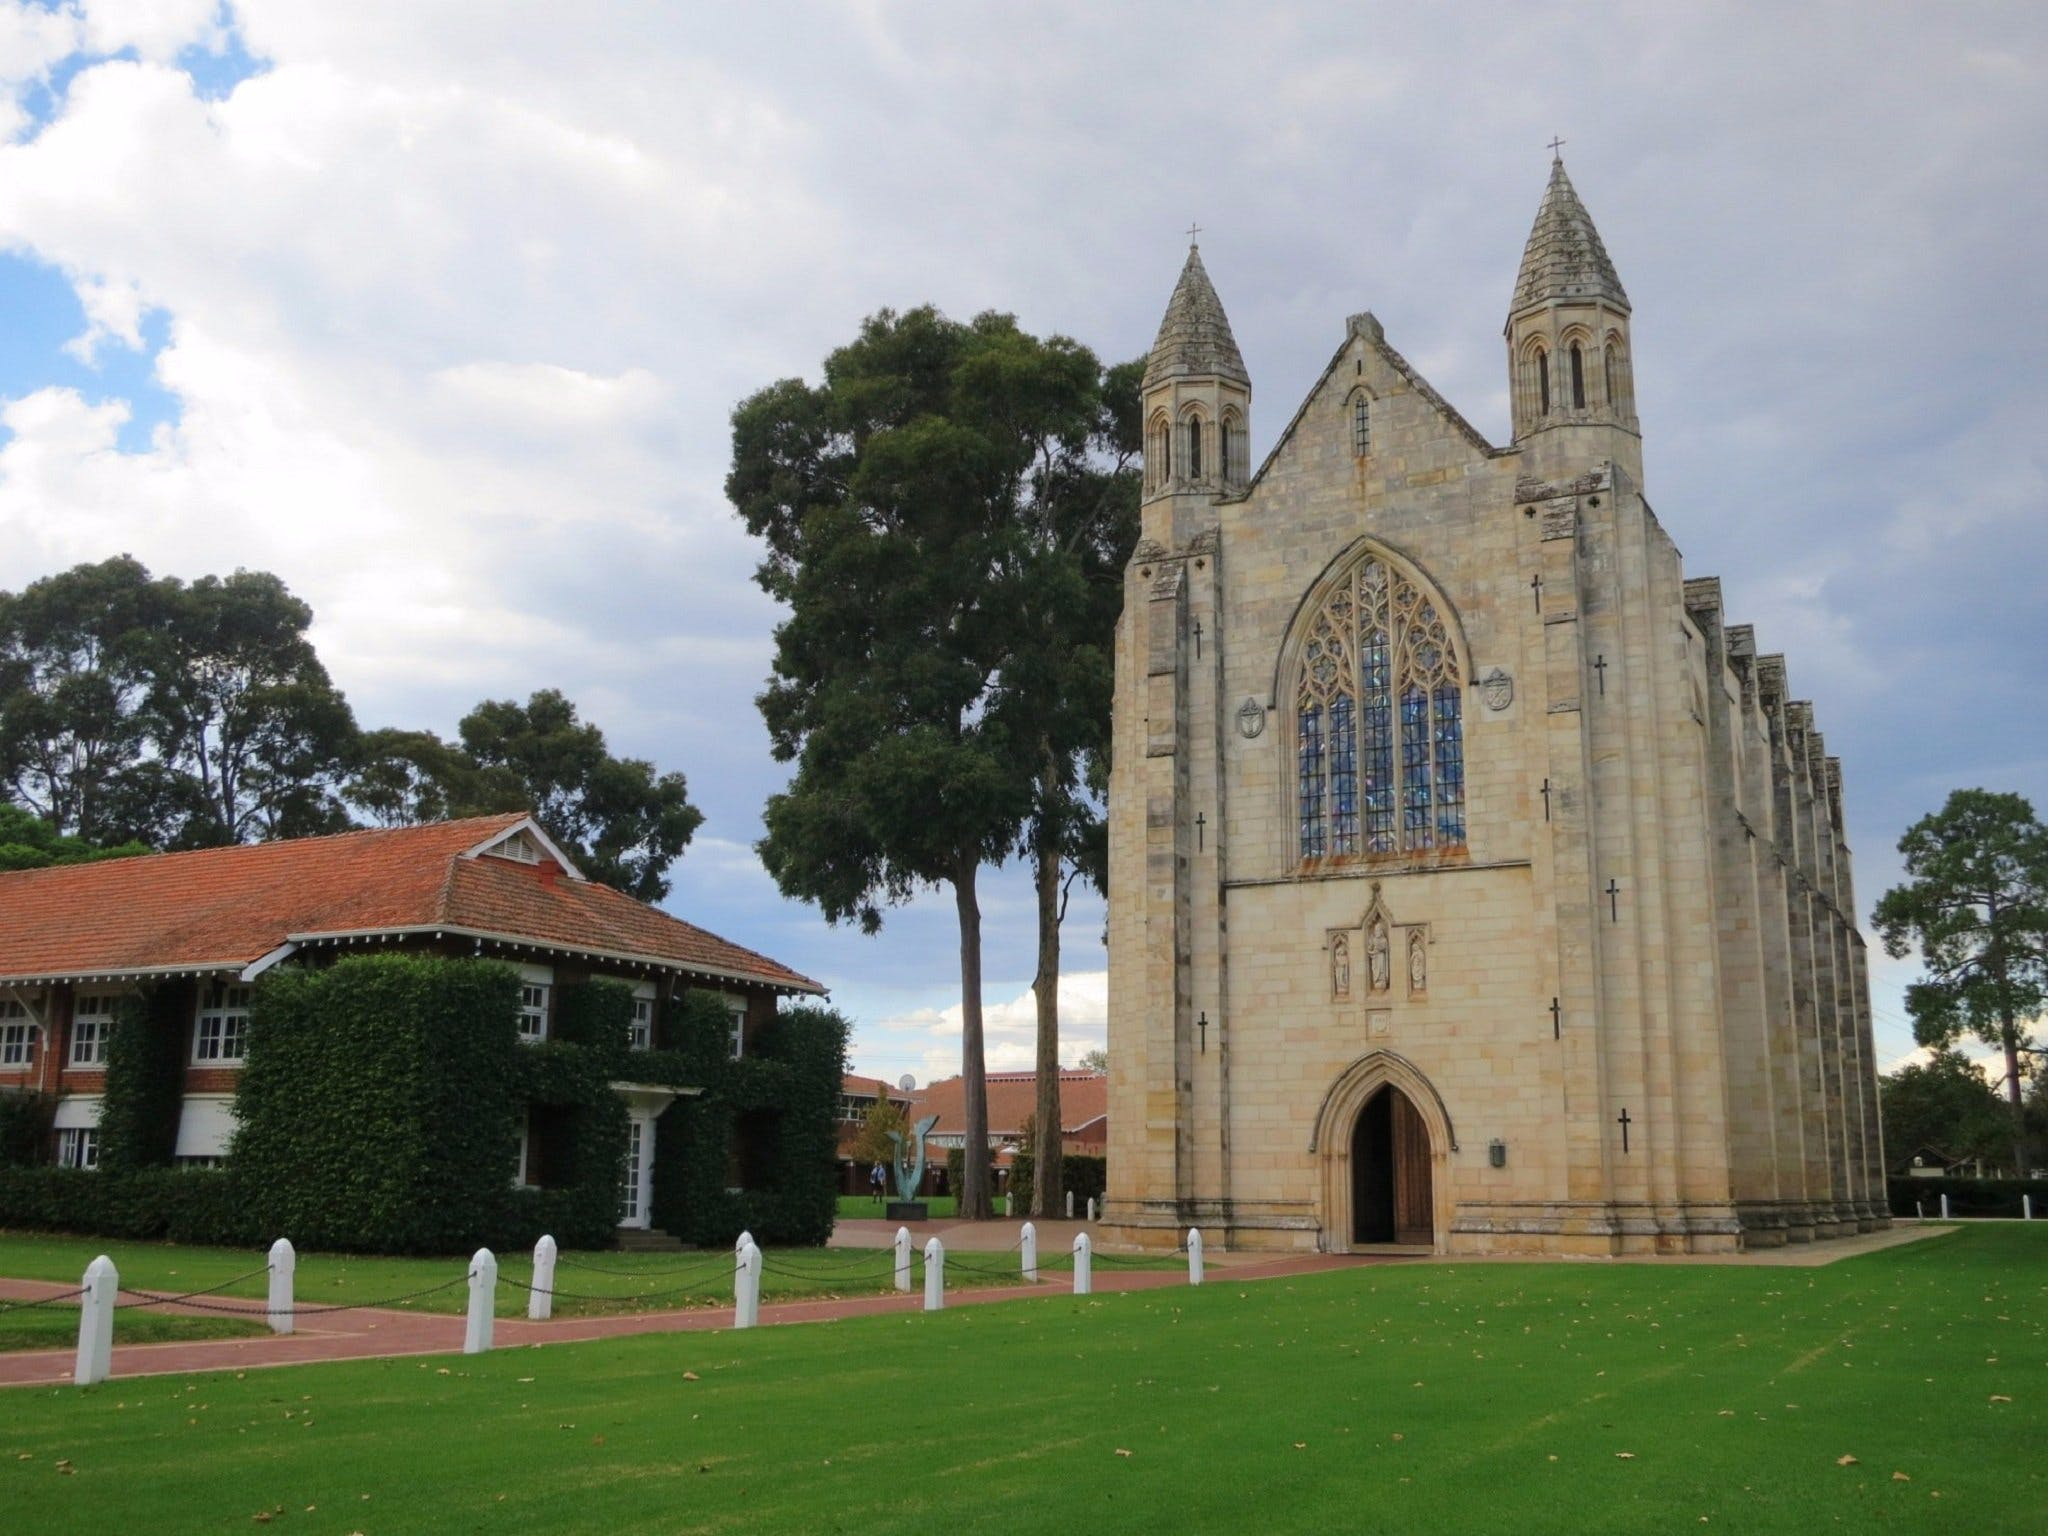 Chapel of St Mary and St George - Attractions